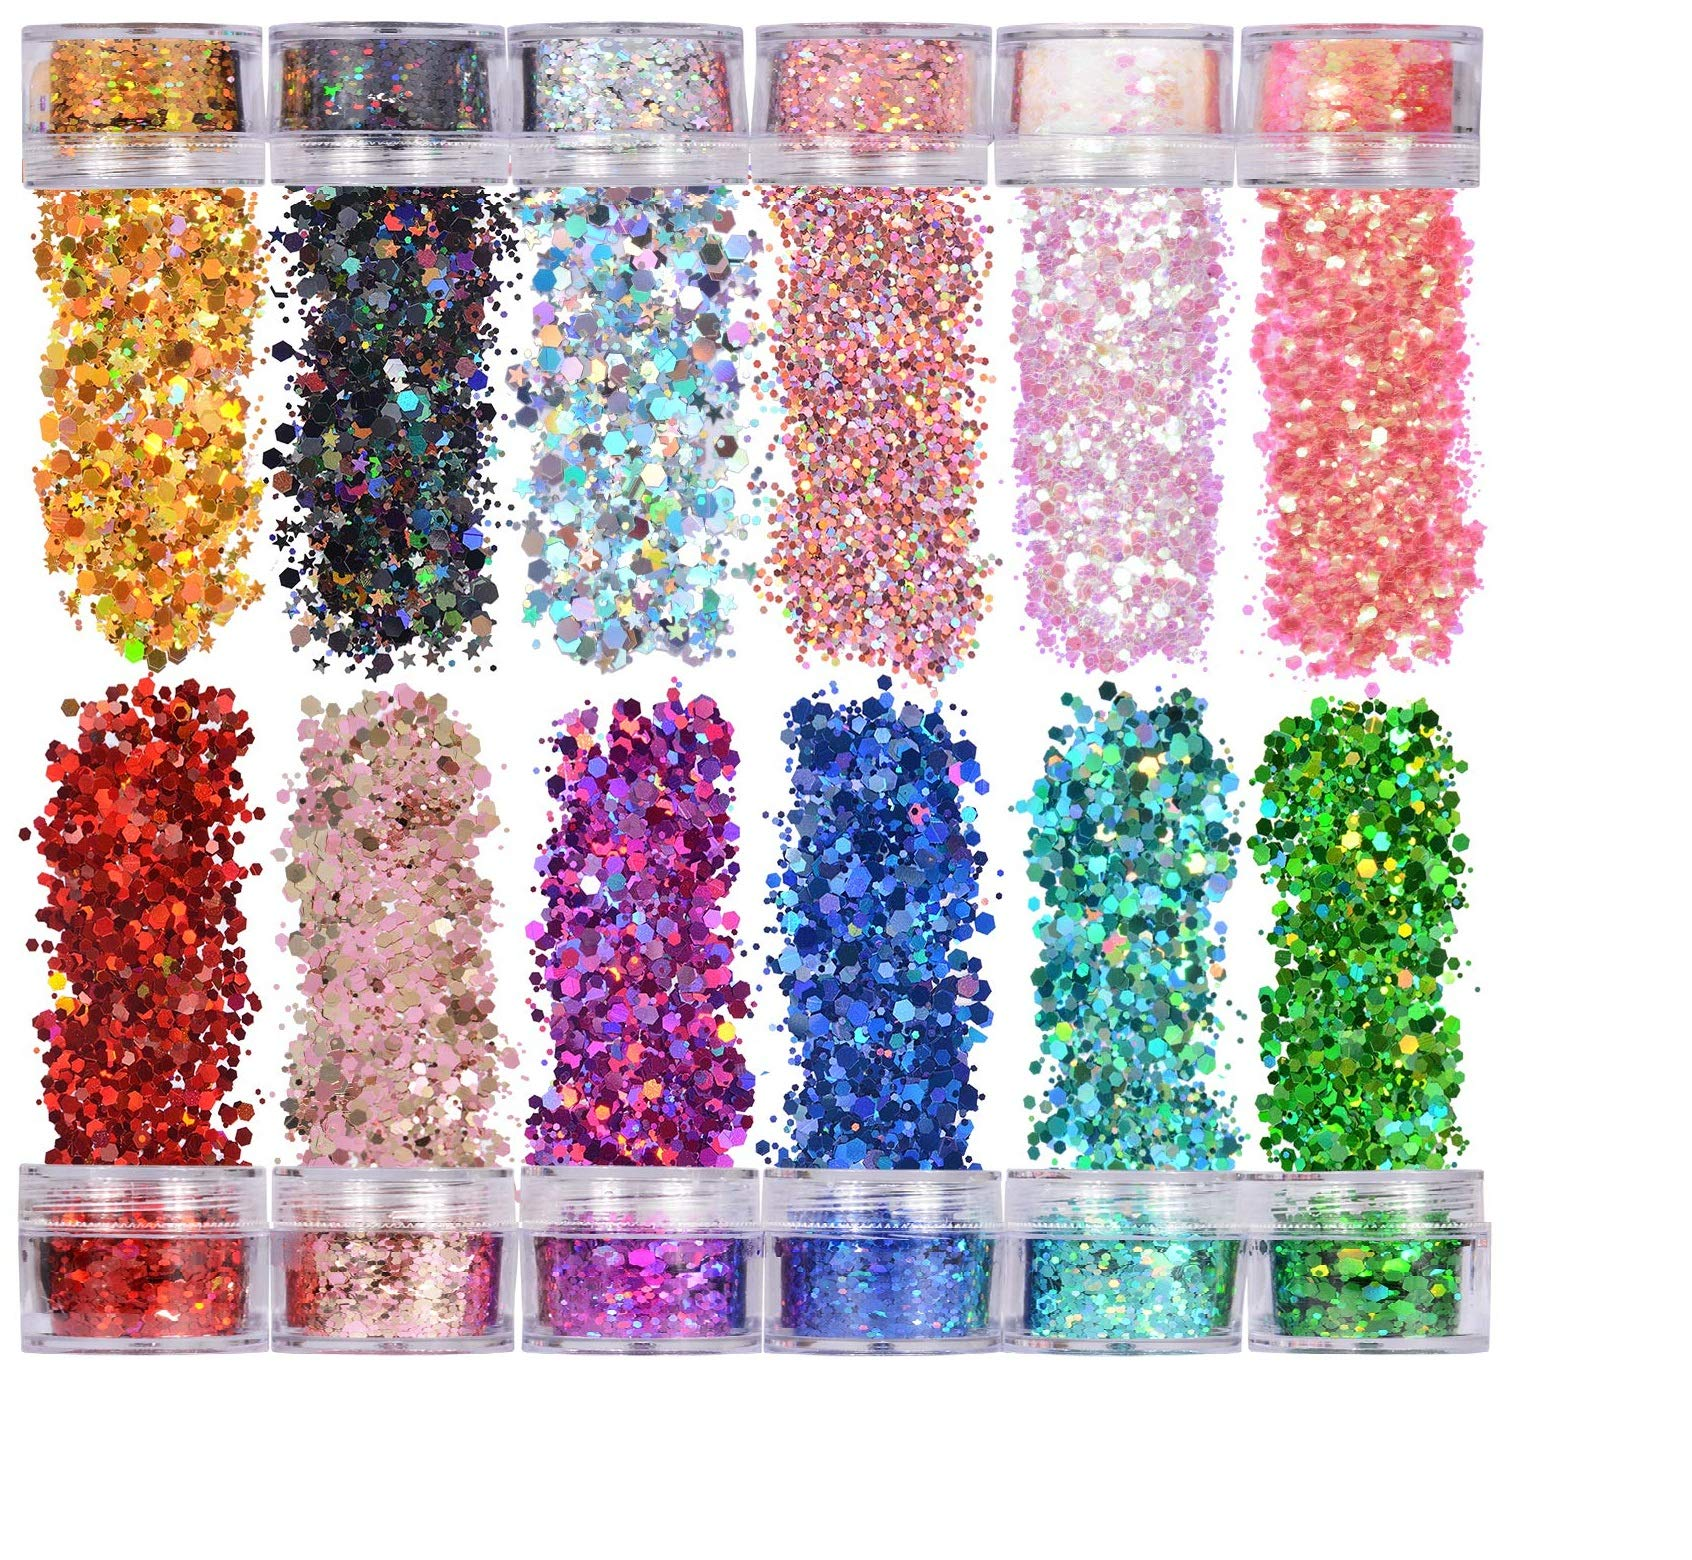 kuou 18 Colors Festival Glitter, Face Glitter Body Hair Nails Decorative Nail Art Glitter Sequin Powder Shiny Nails Decoration for Christmas Arts and Crafts